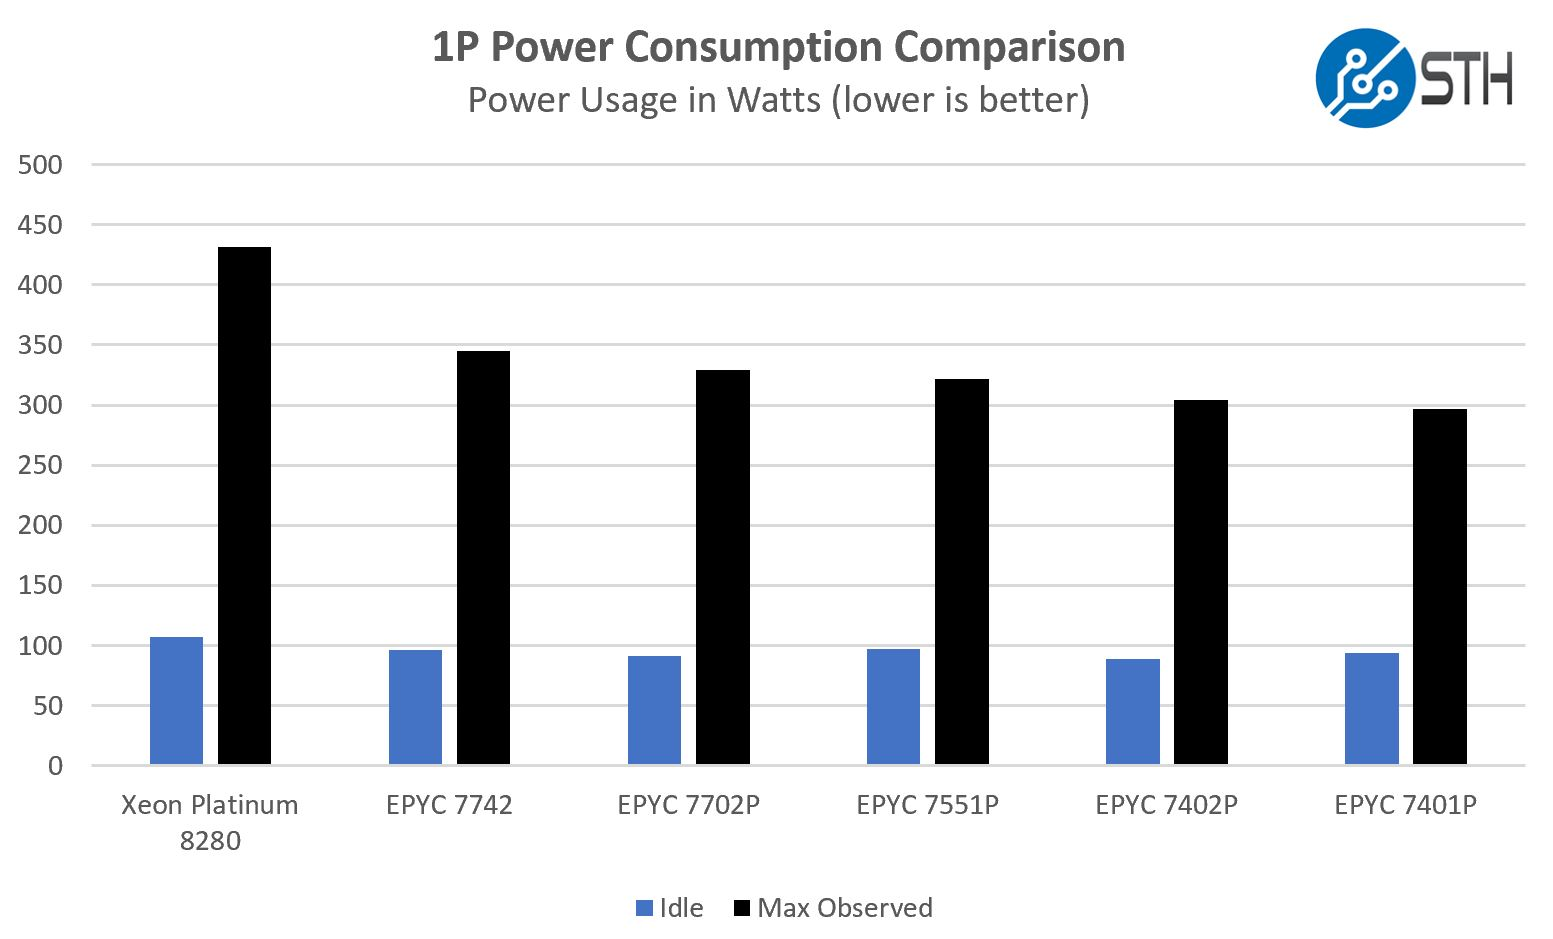 AMD EPYC 7002 Power Consumption